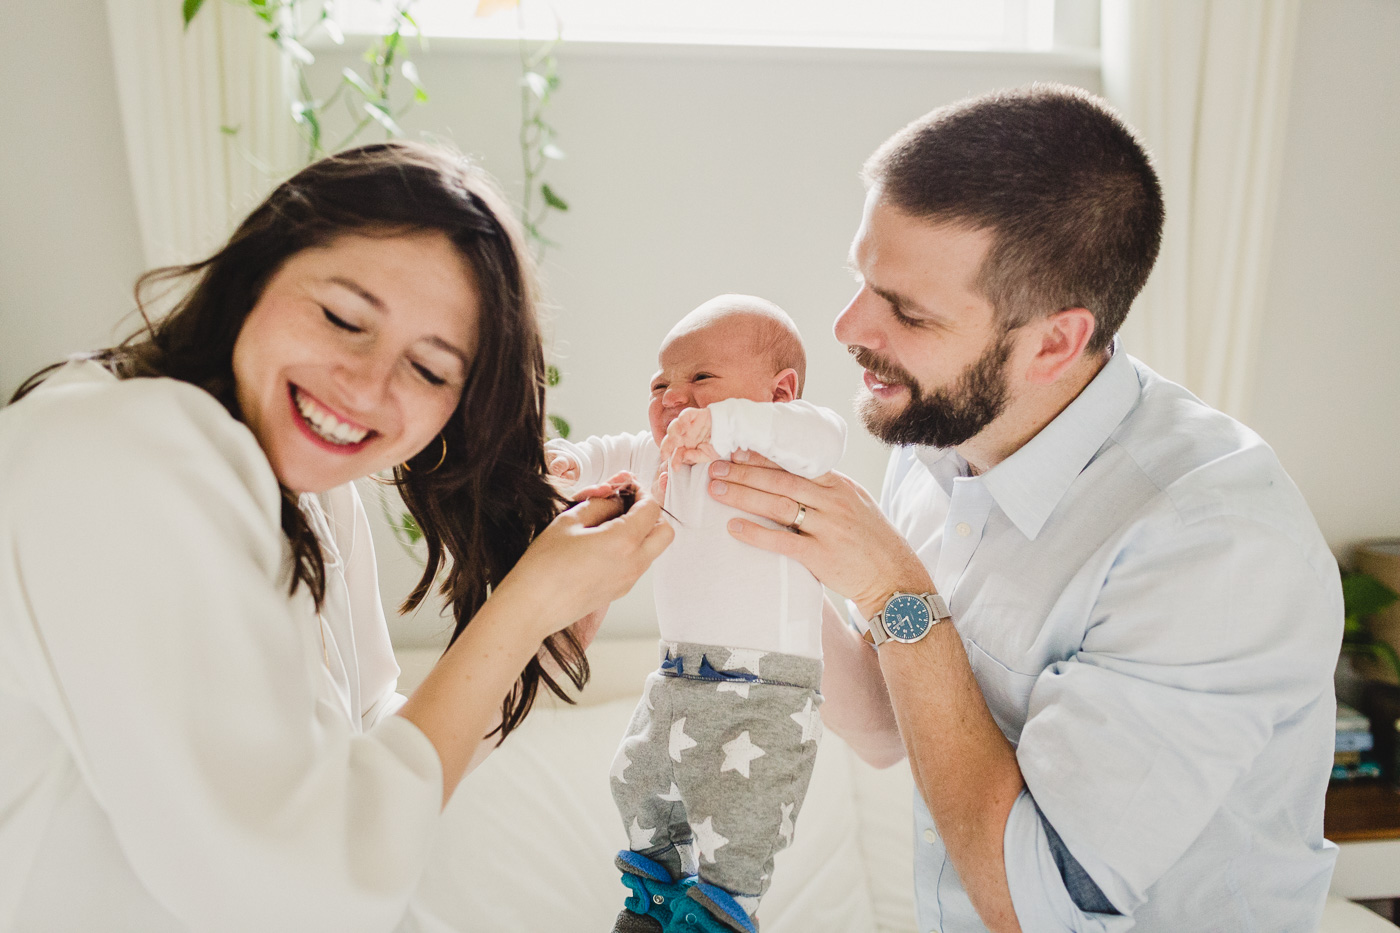 Authentic-Newborn-Photography-Connection-San-Francisco-Bay-Area-